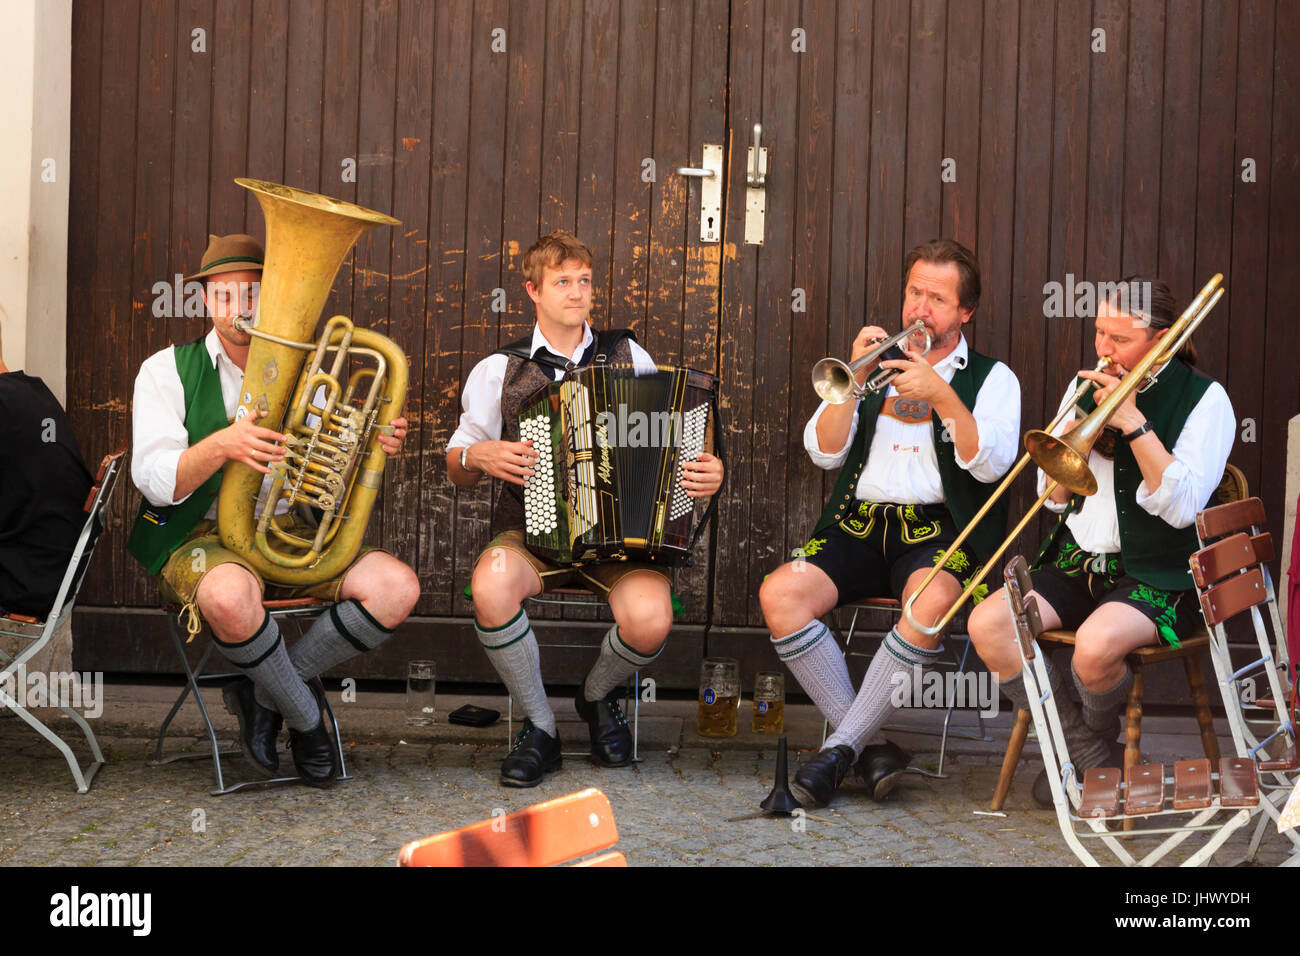 traditional-bavarian-oompah-band-playing